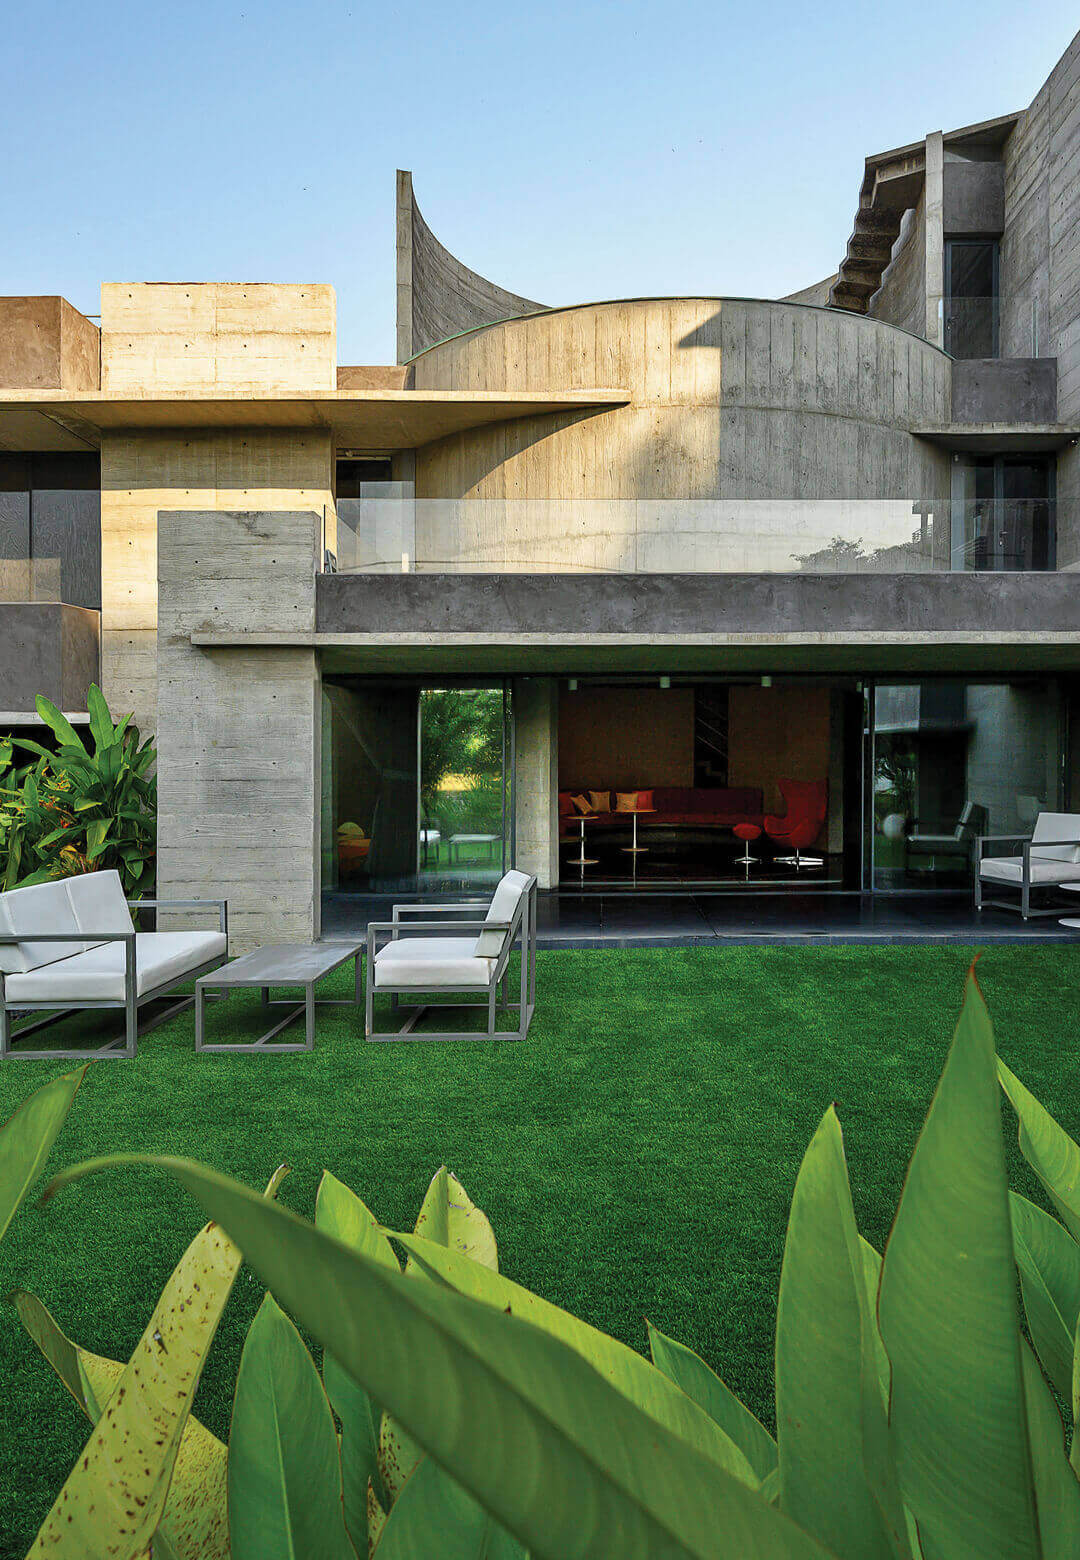 The Plain Ties House in Surat, Gujarat, by Matharoo Associates attempts to revive multigenerational familial living within its concrete quarters | Plain Ties House | Matharoo Associates | STIRworld